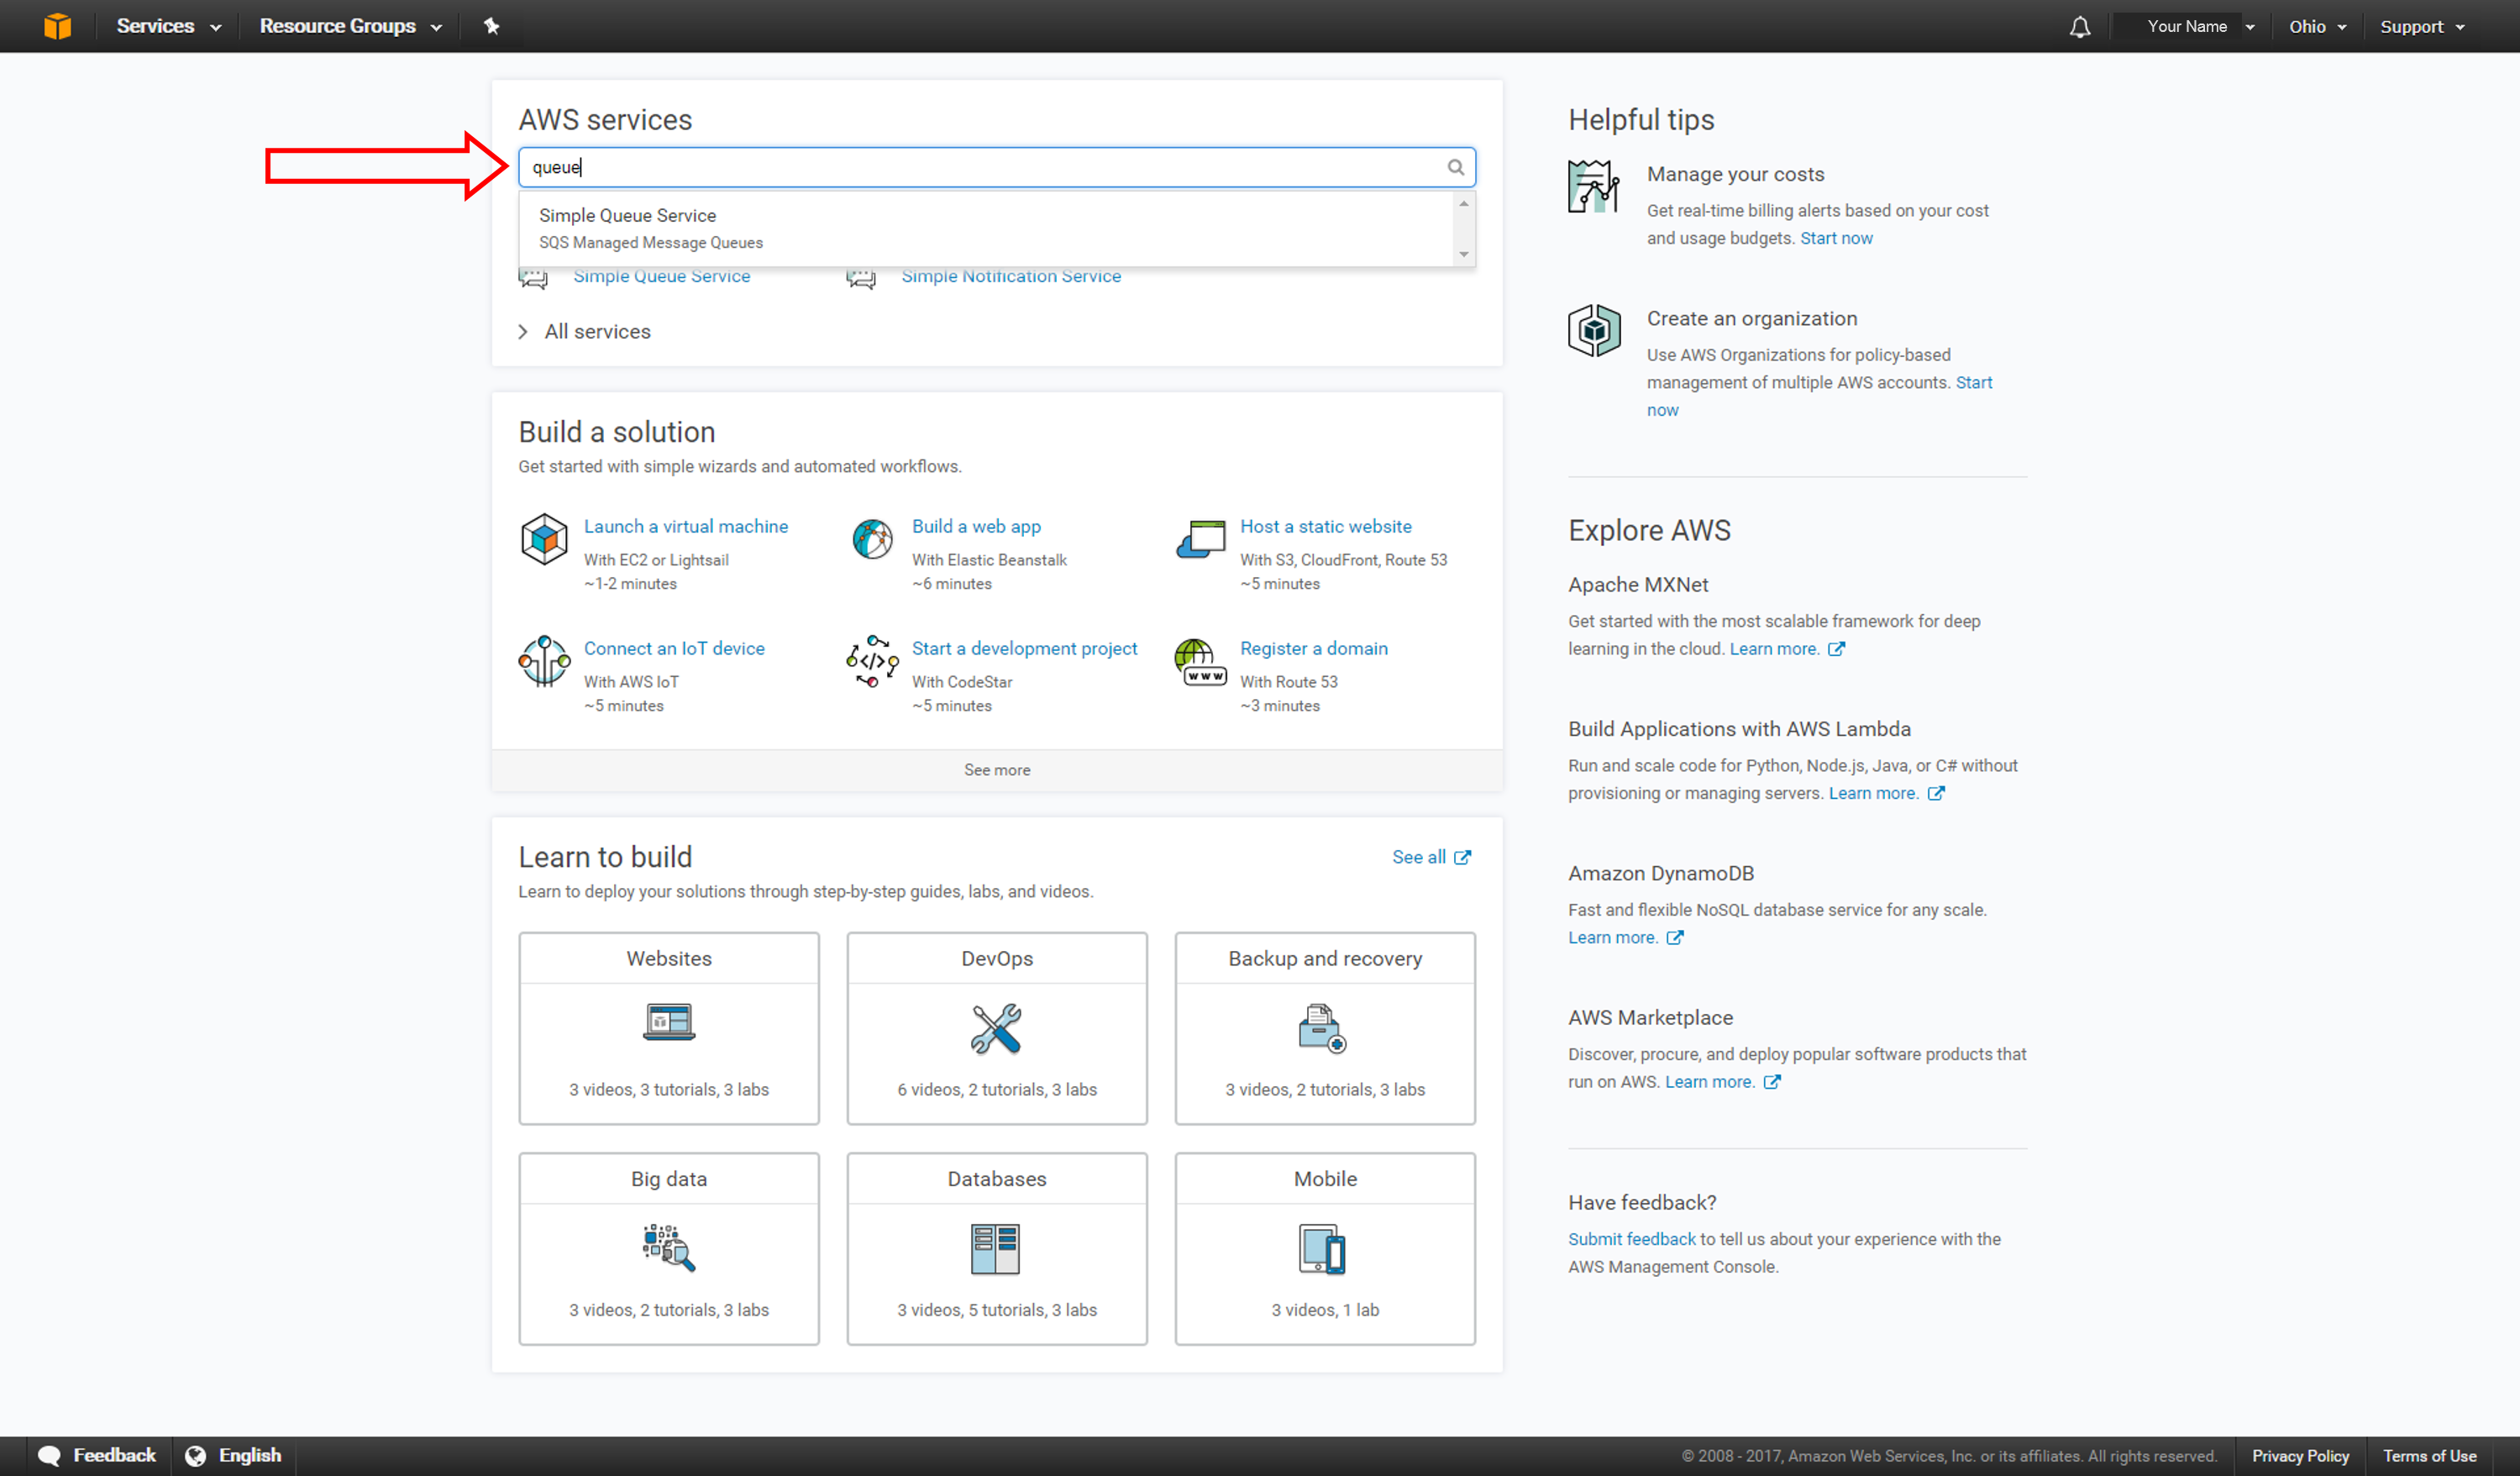 How to send messages between distributed applications - AWS